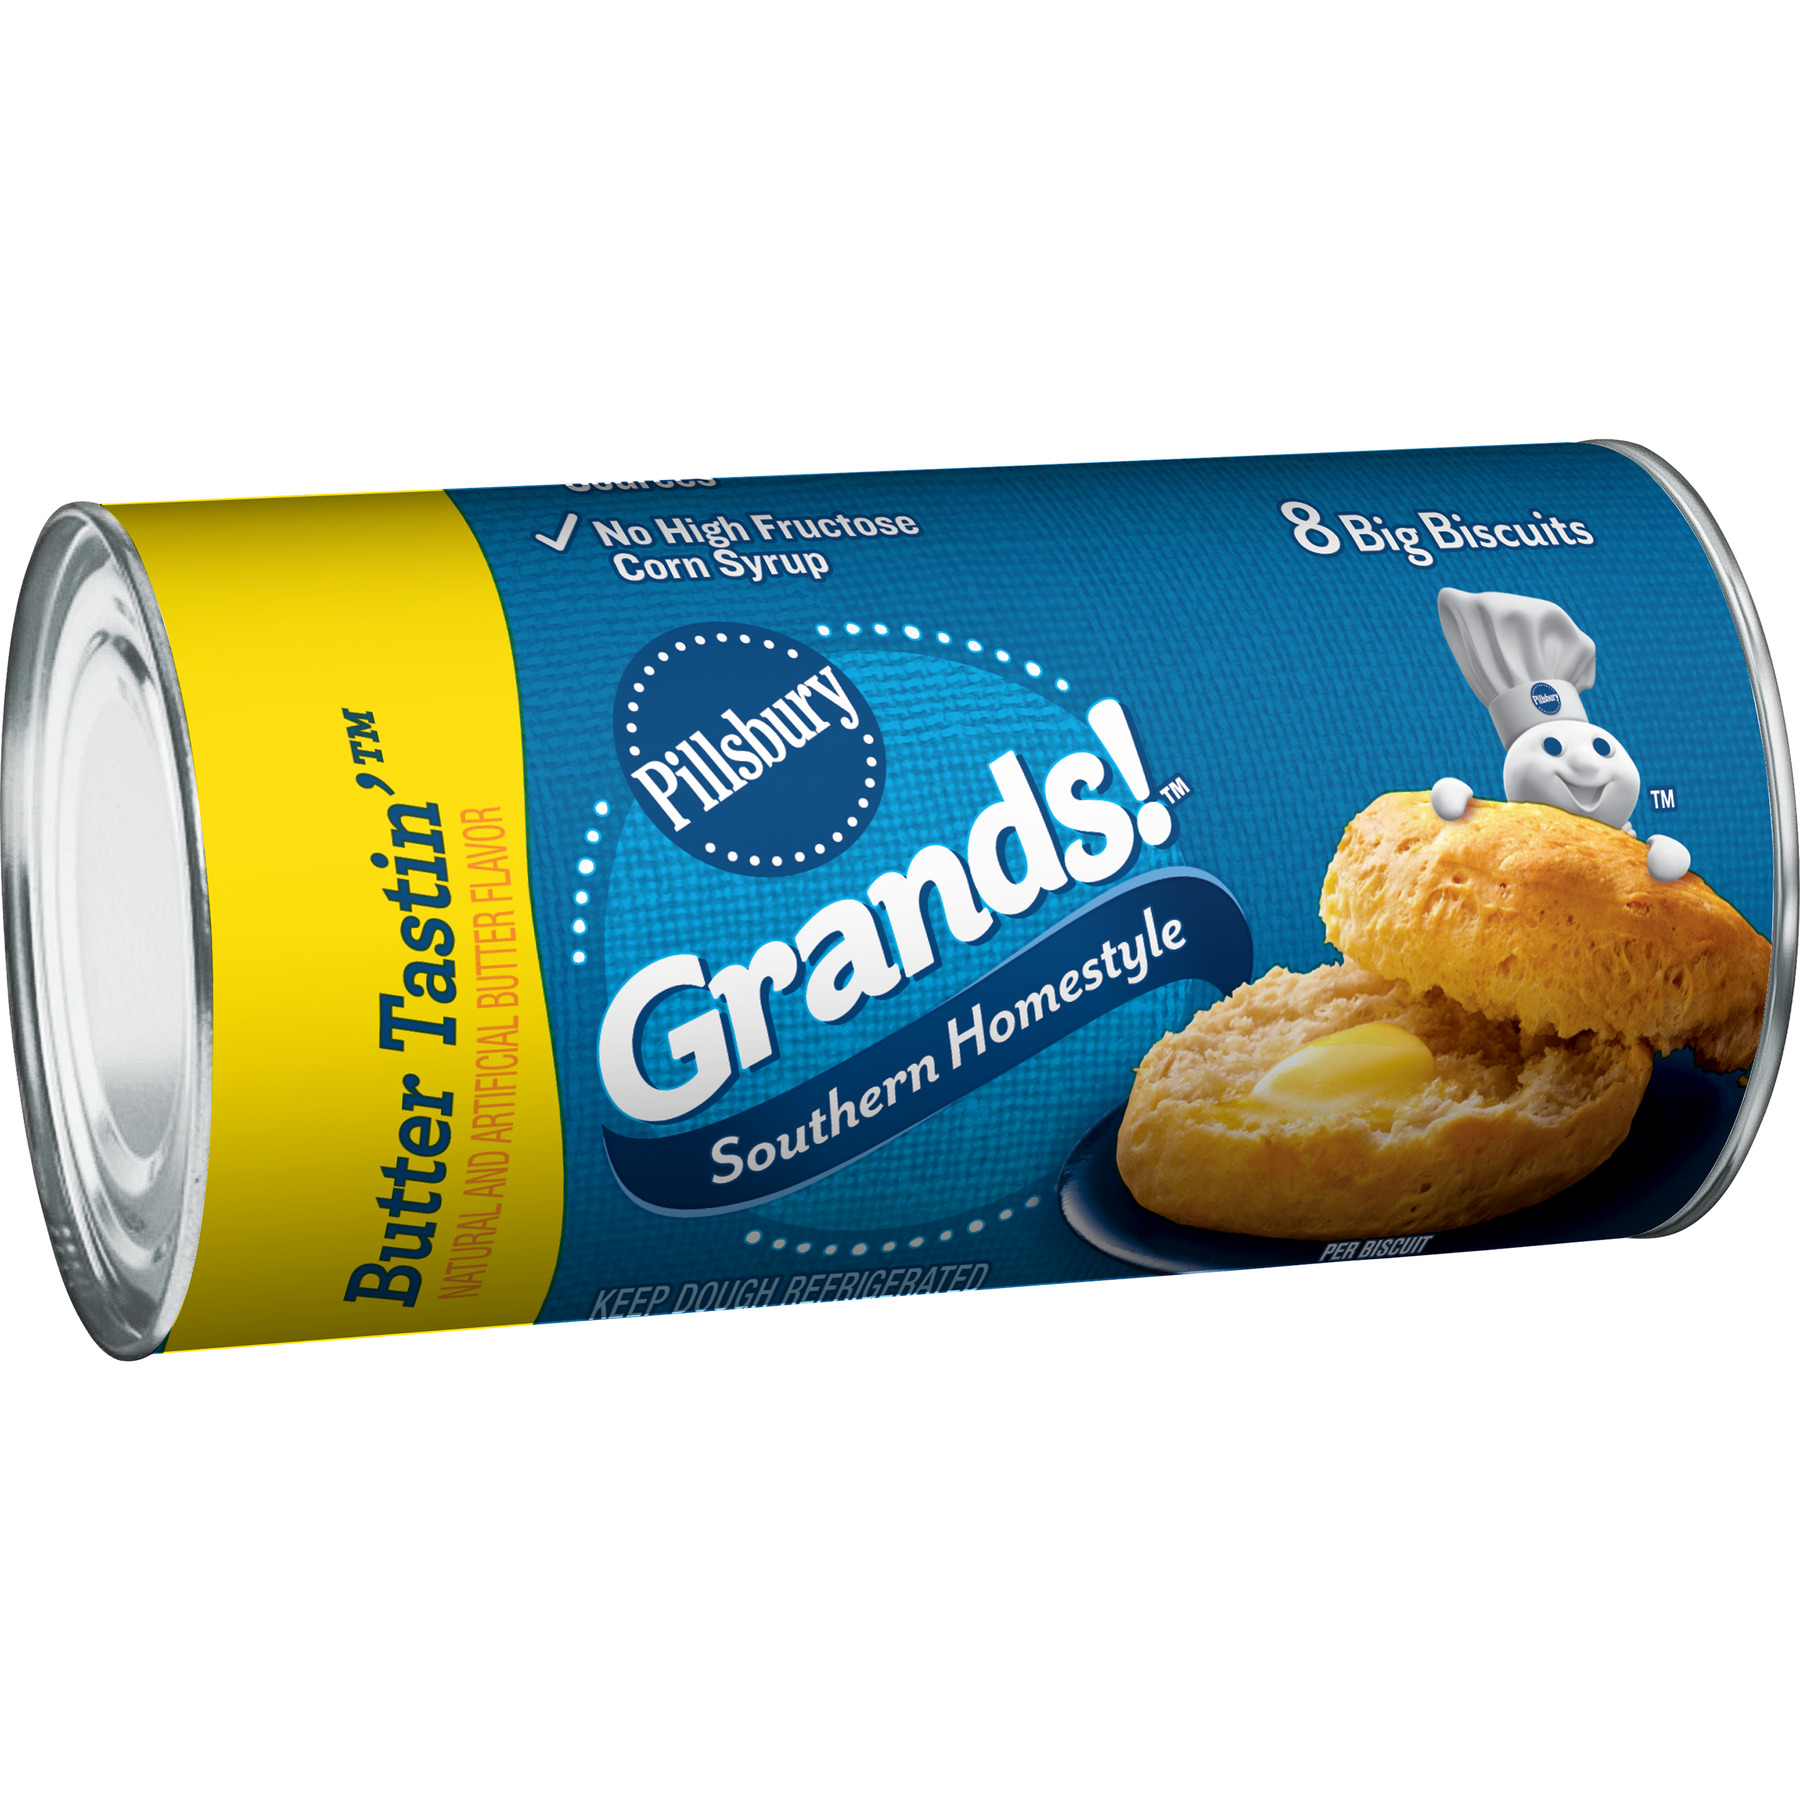 Pillsbury Southern Homestyle Butter Tastin' Biscuits 8 Ct 16.3 oz